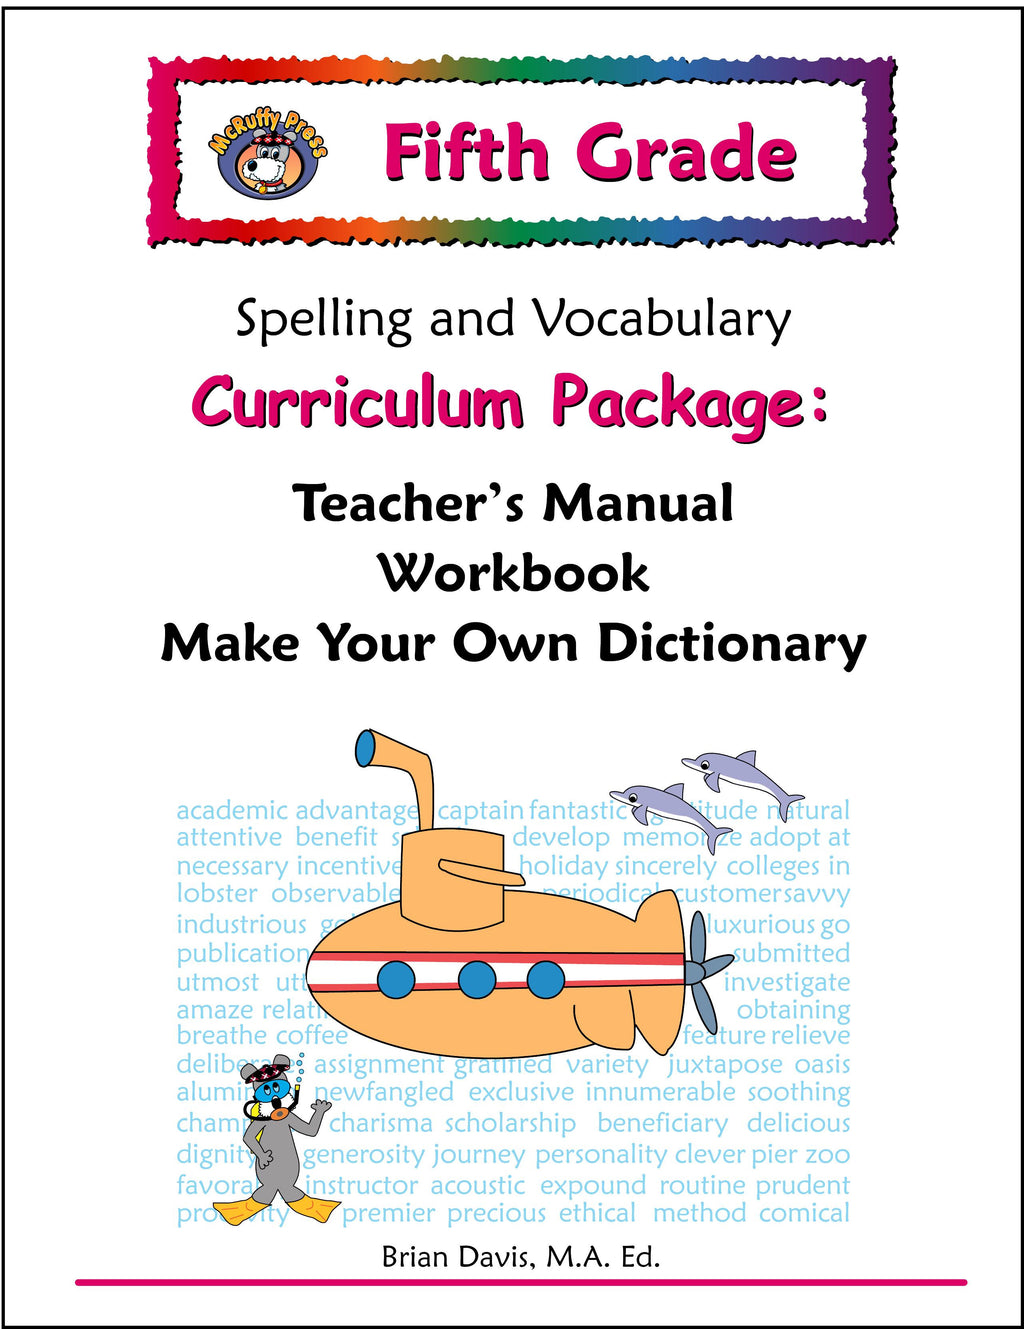 Fifth Grade Spelling and Vocabulary Curriculum Package - McRuffy Press